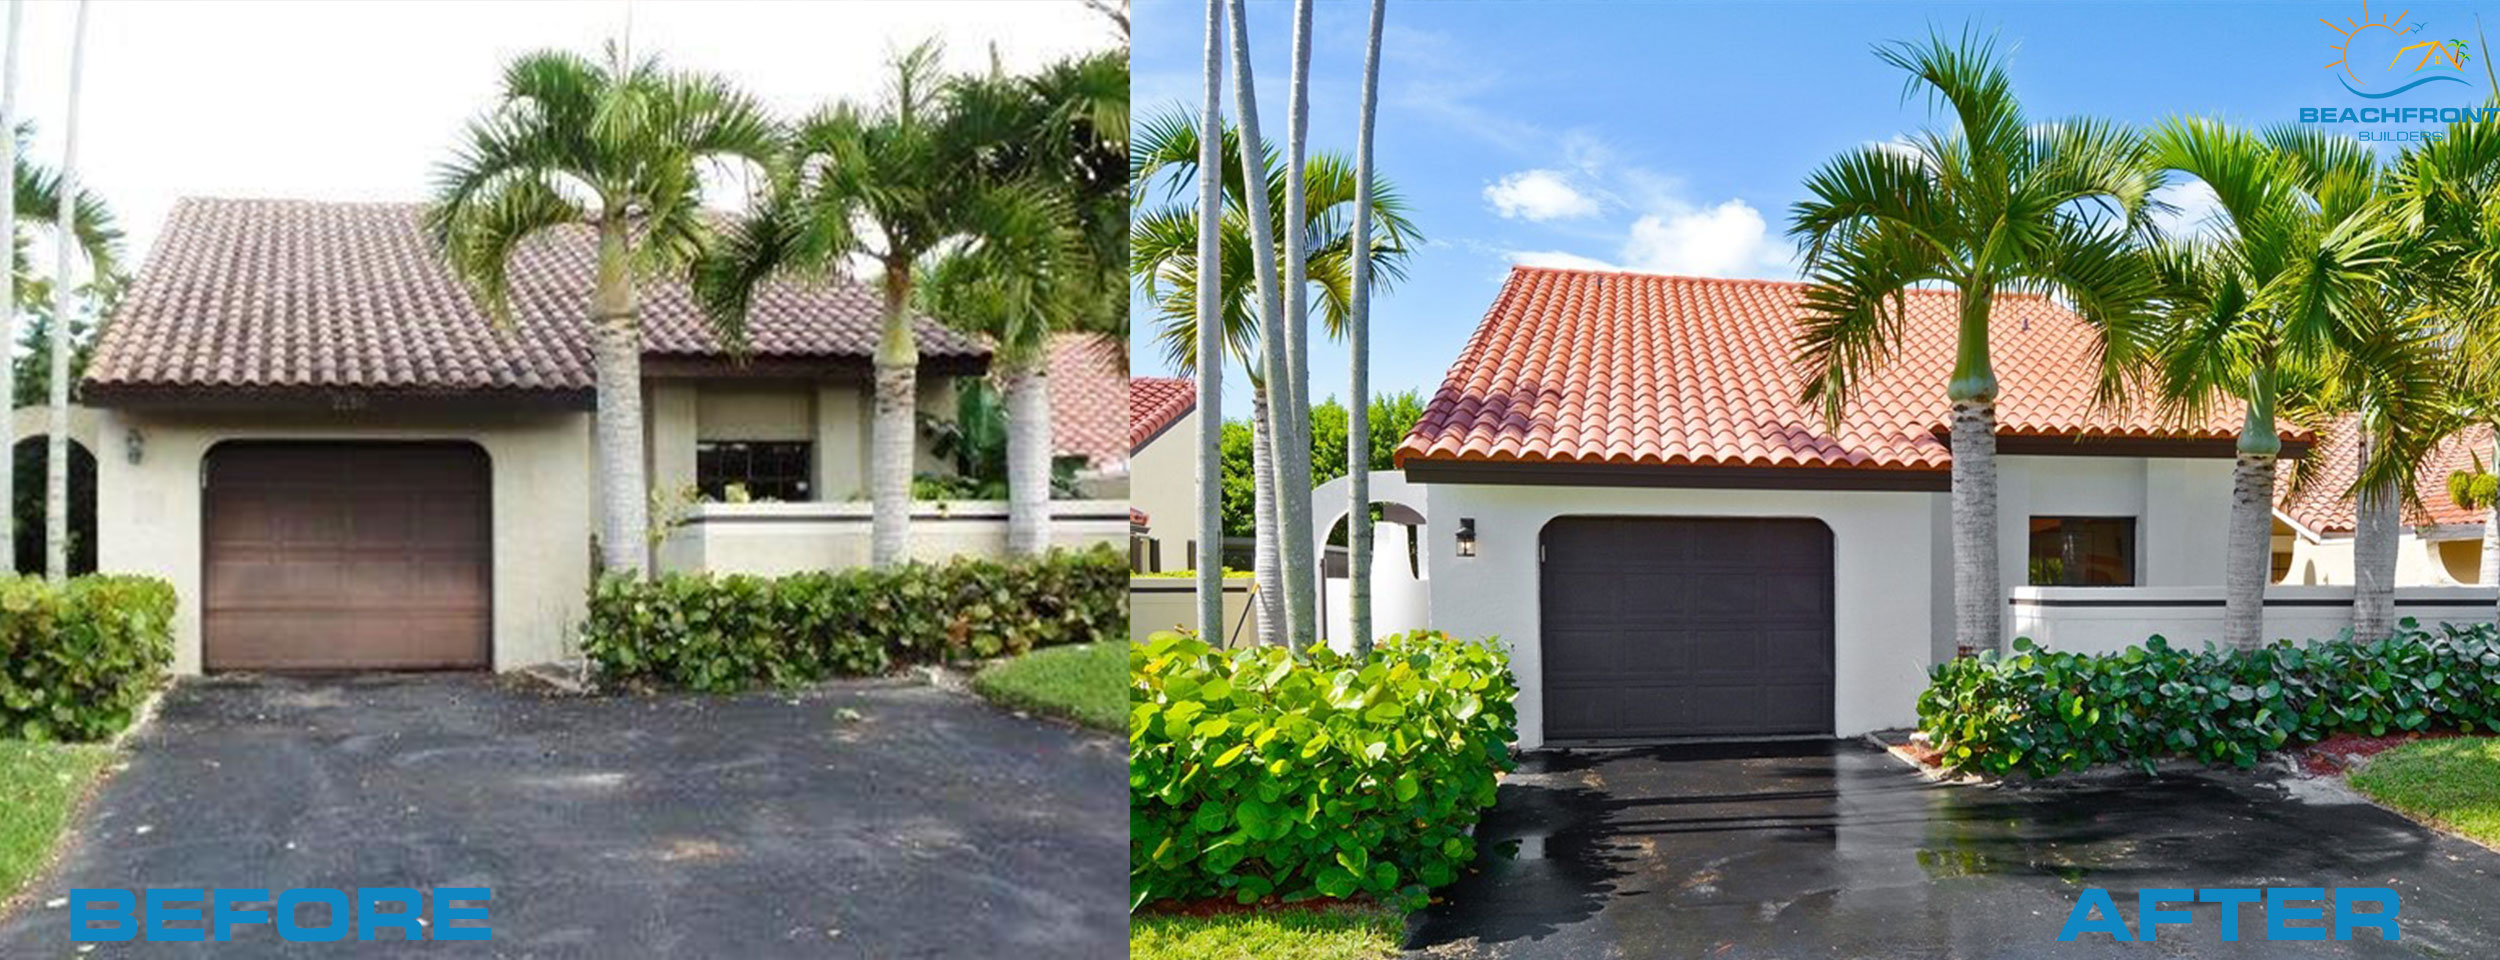 Exterior before and after photos delray beach flip house